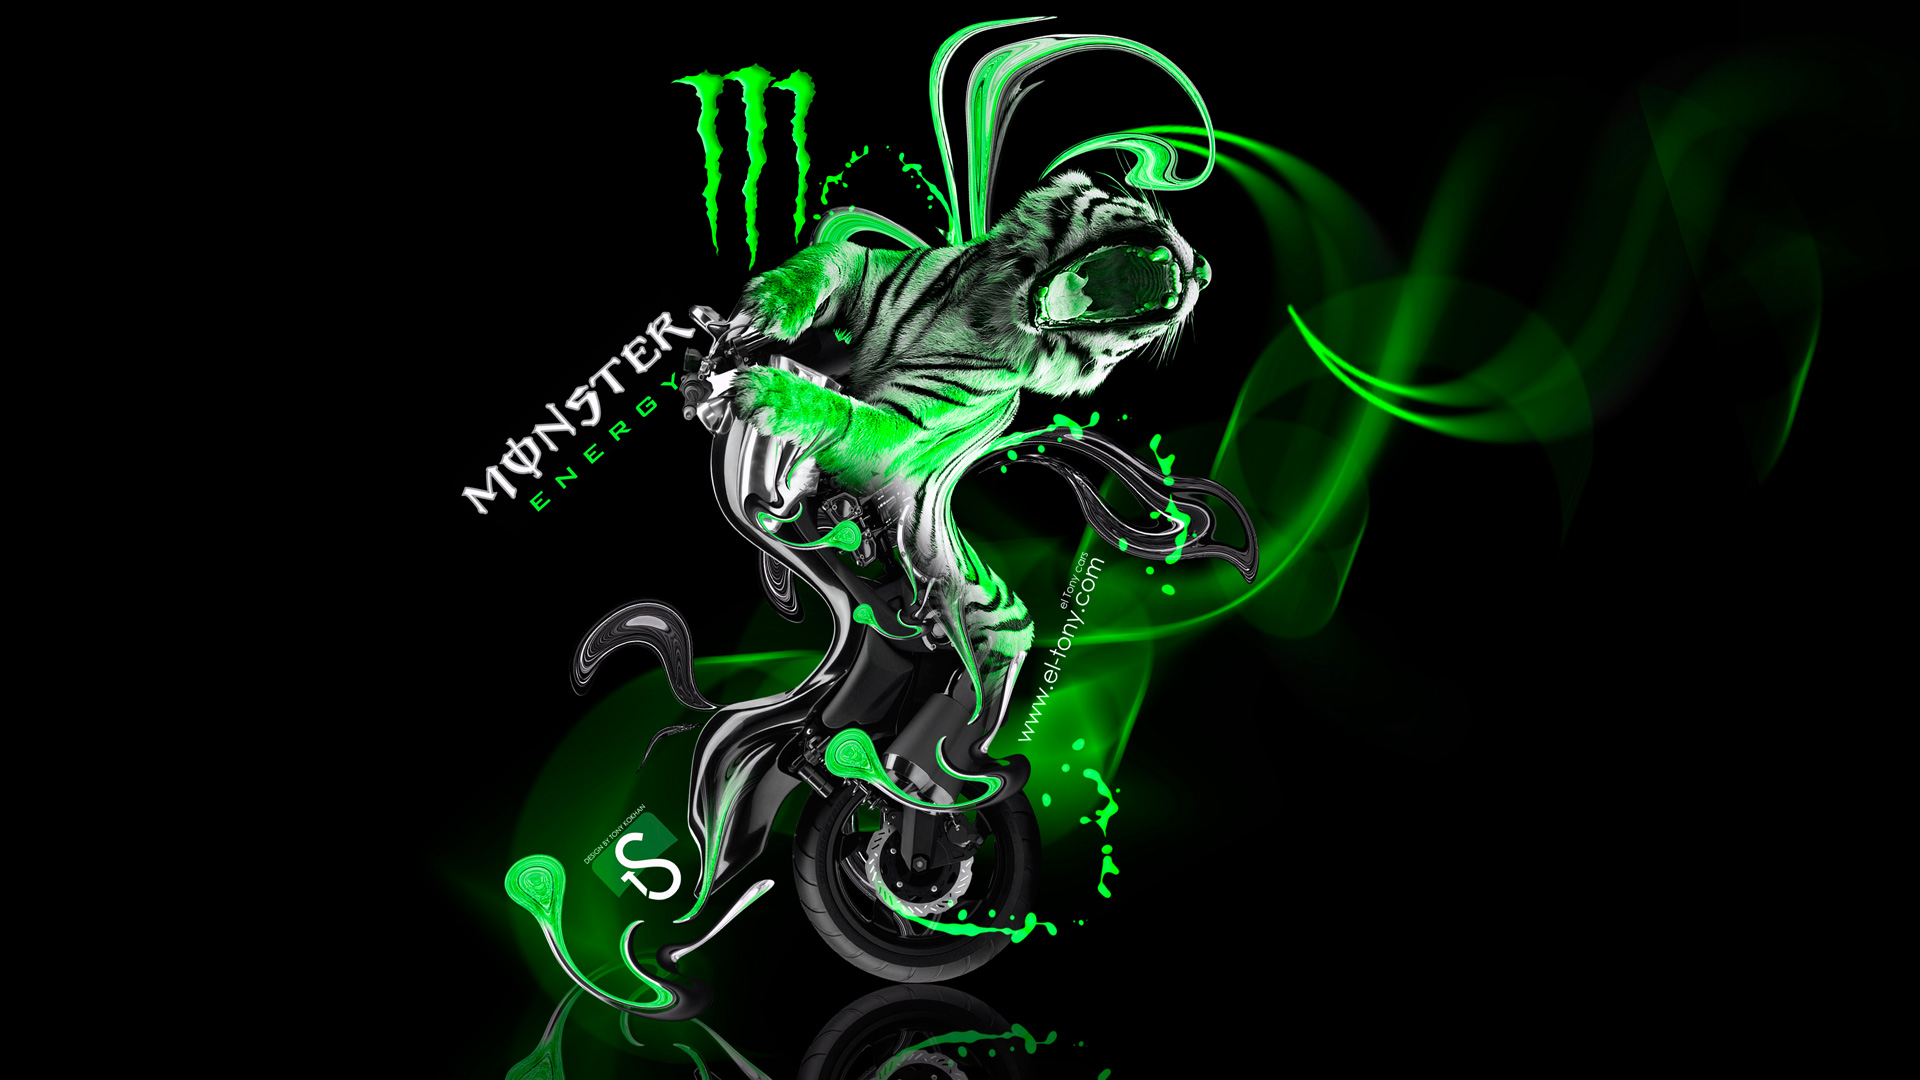 monster energy wallpaper for computer wallpapersafari